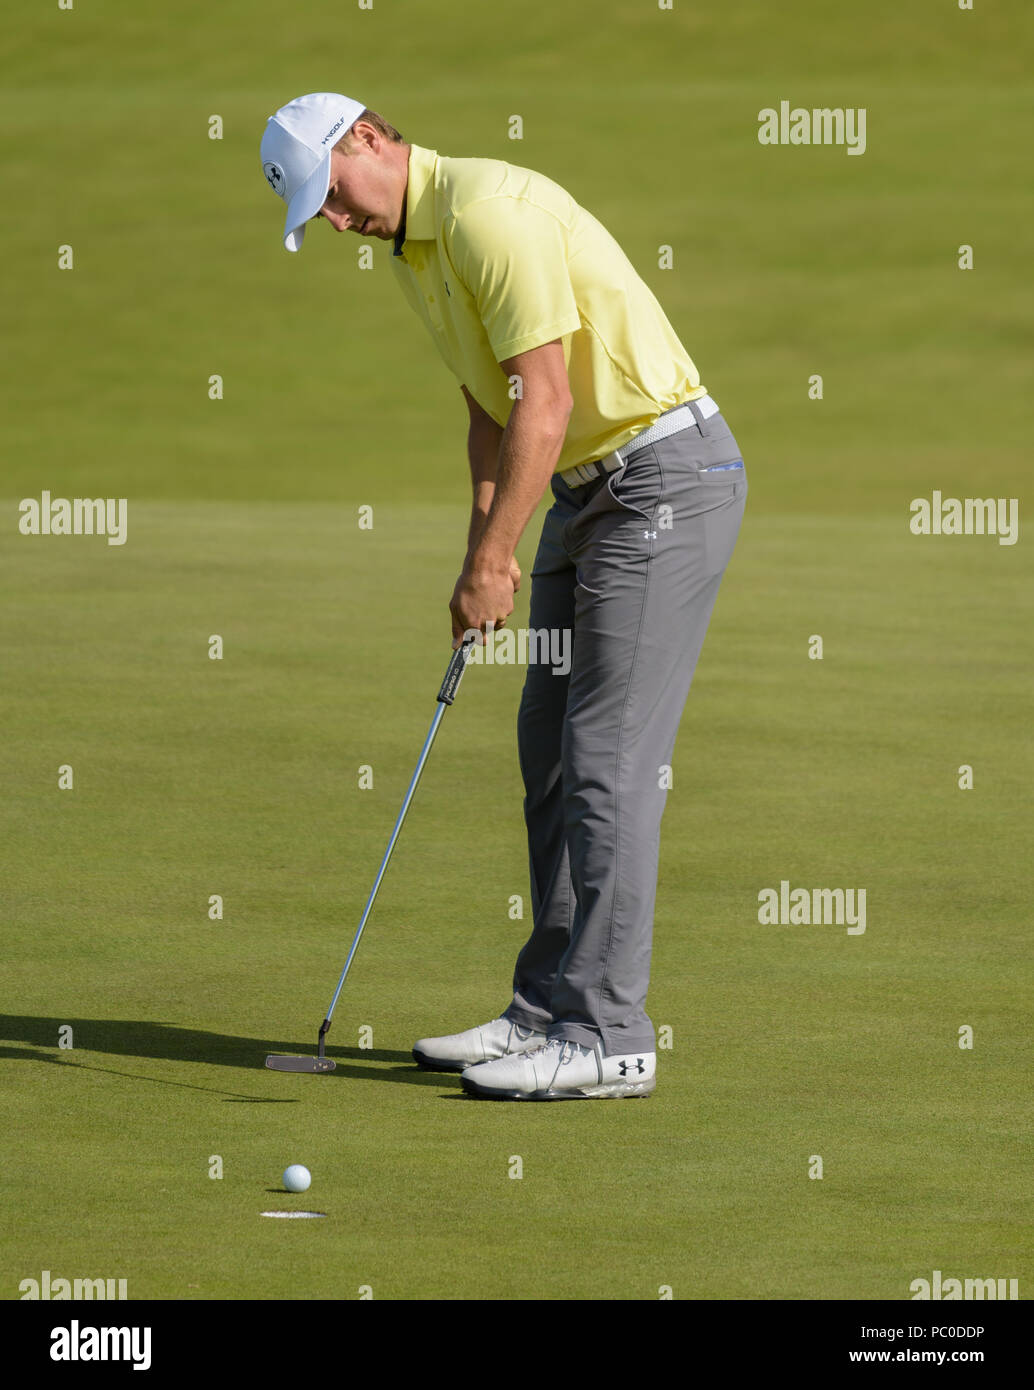 Champion golfer Jordan Spieth showing focus and determination to hole a putt at Royal Birkdale, Southport, during a practice day at The Open in 2017 - Stock Image